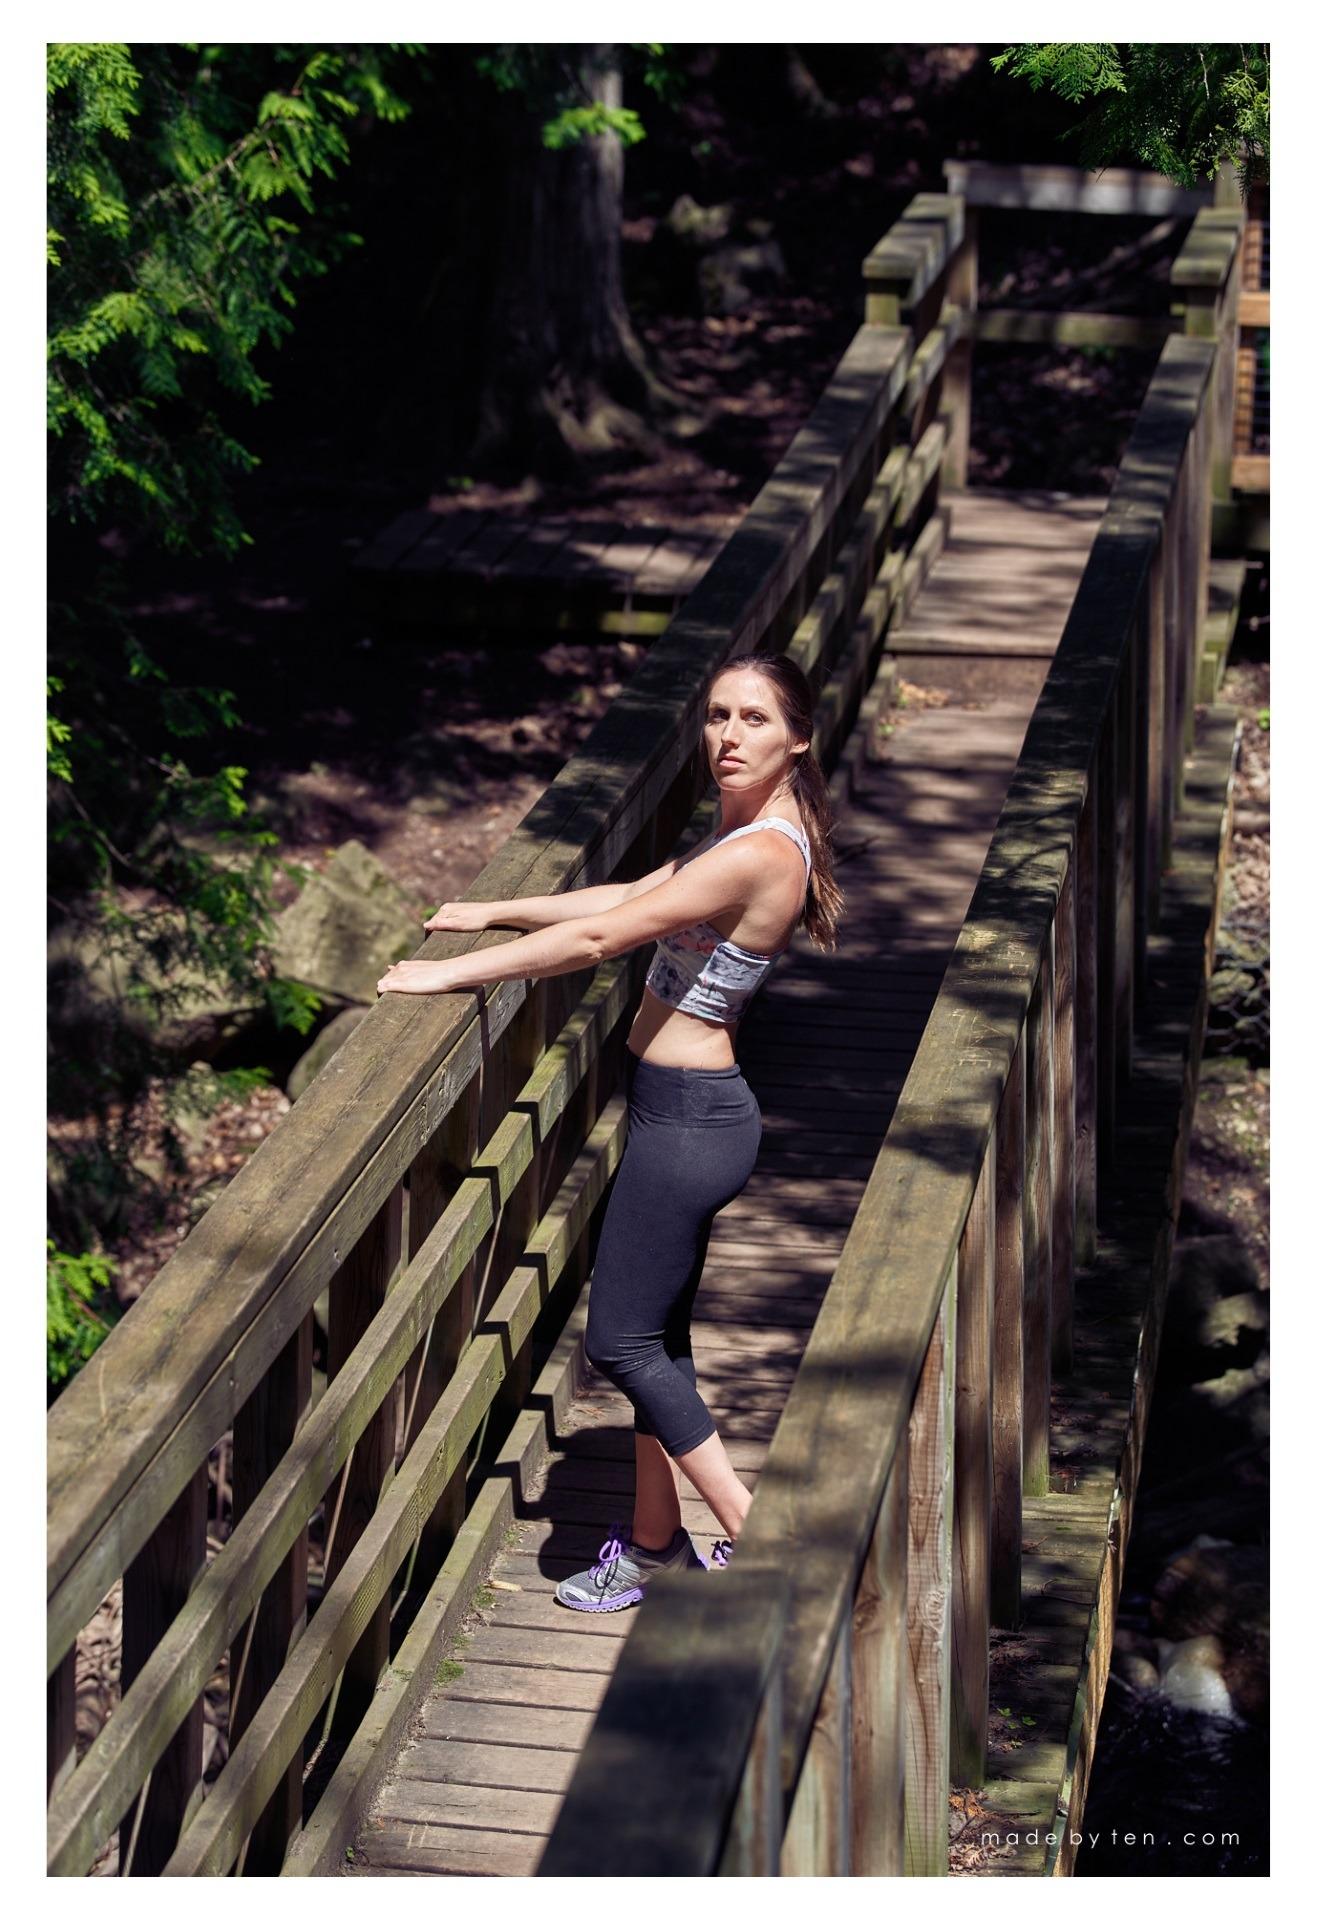 Themed Photoshoot Inspiration Outdoor Fitness And Hiking